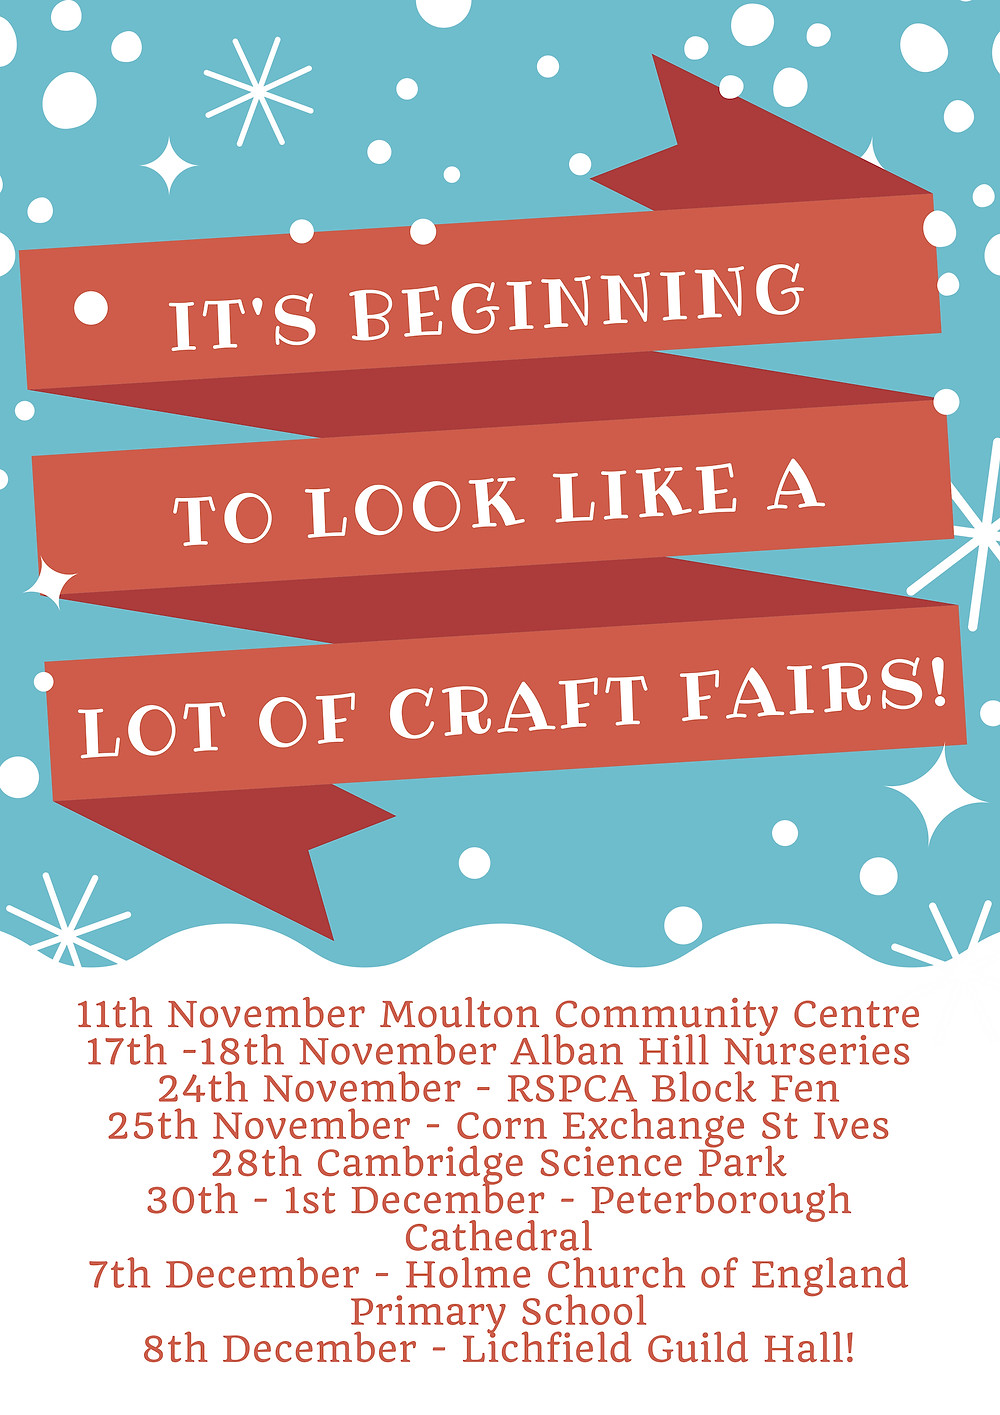 List of craft fairs and dates